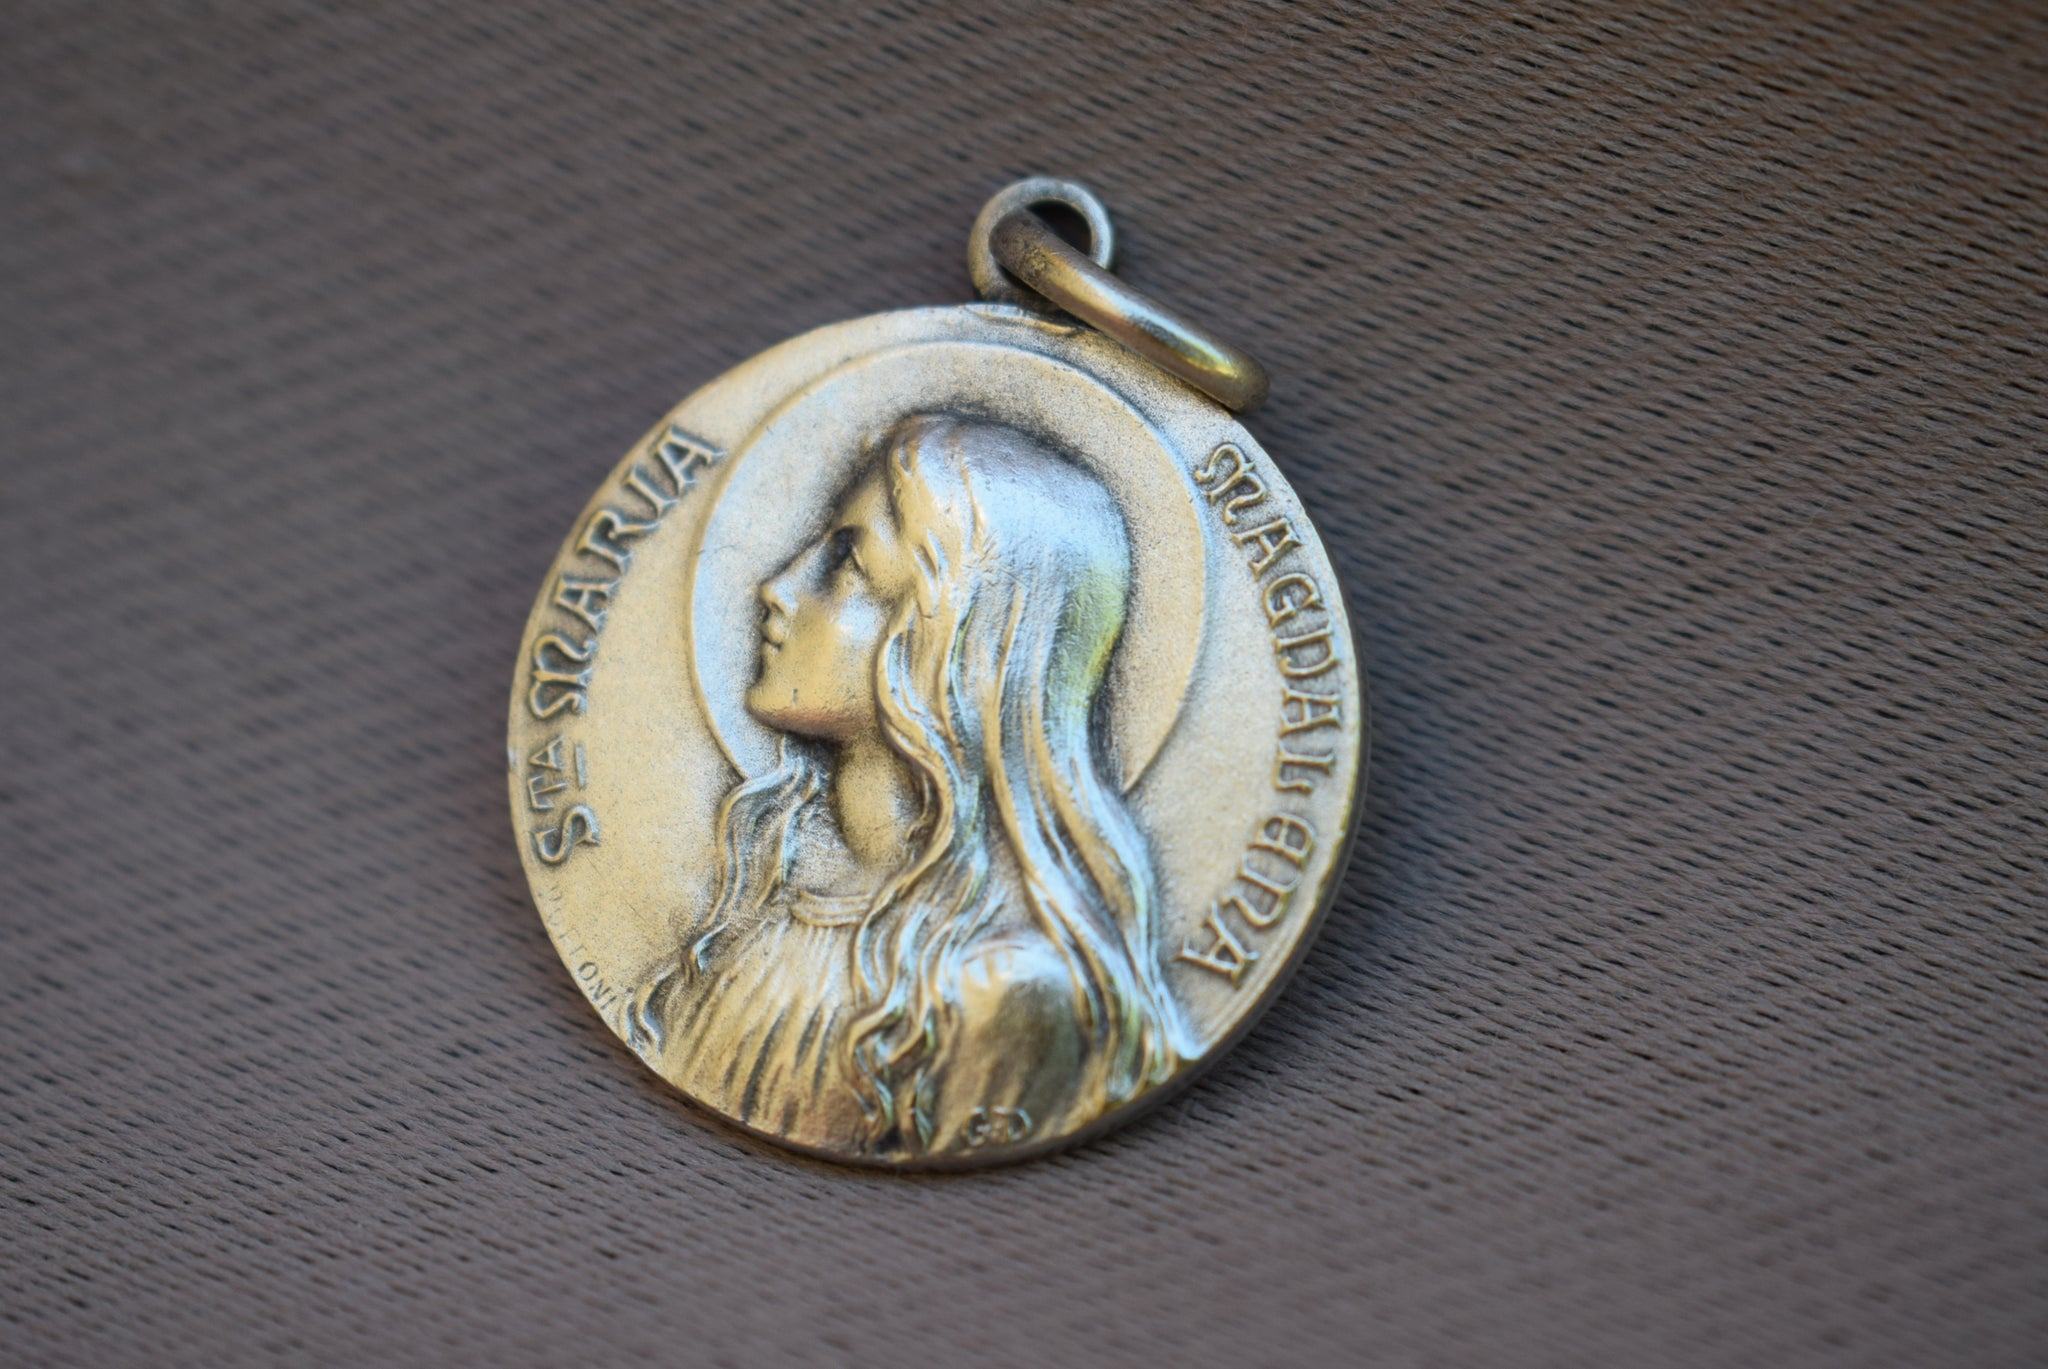 French vintage saint mary magdalene medal pendant charmantiques saint mary magdalene medal french religious antique medal pendant charm maria magdalena vezelay mozeypictures Gallery